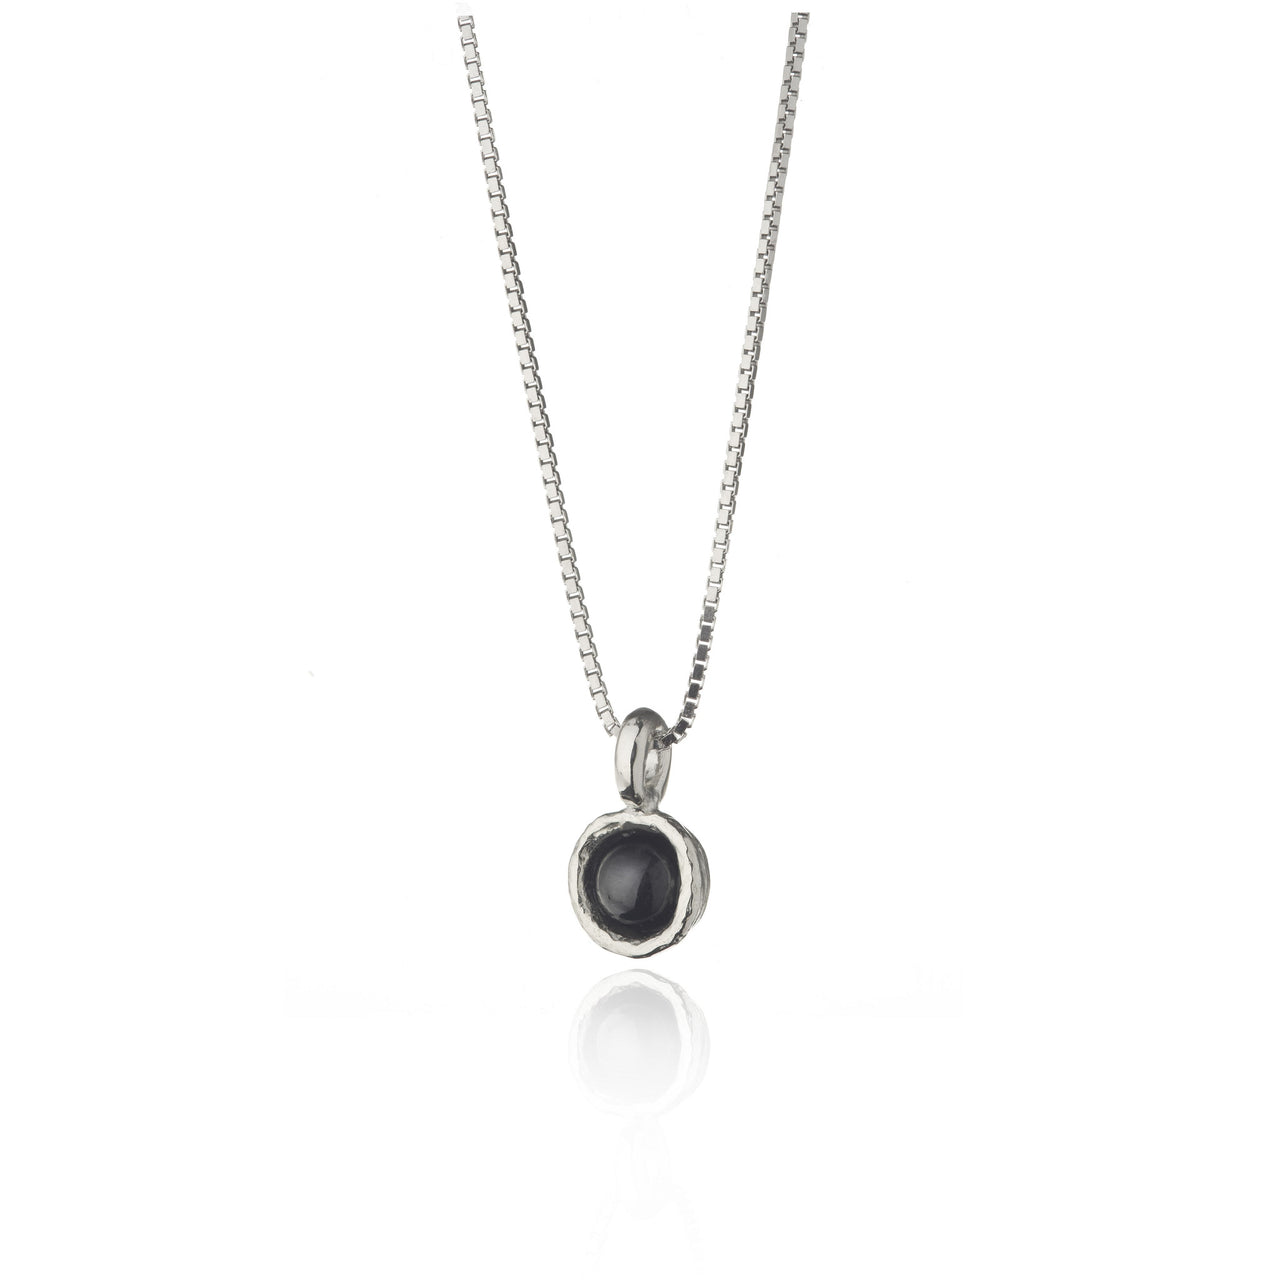 Askja Silver Necklace with Icelandic Lava